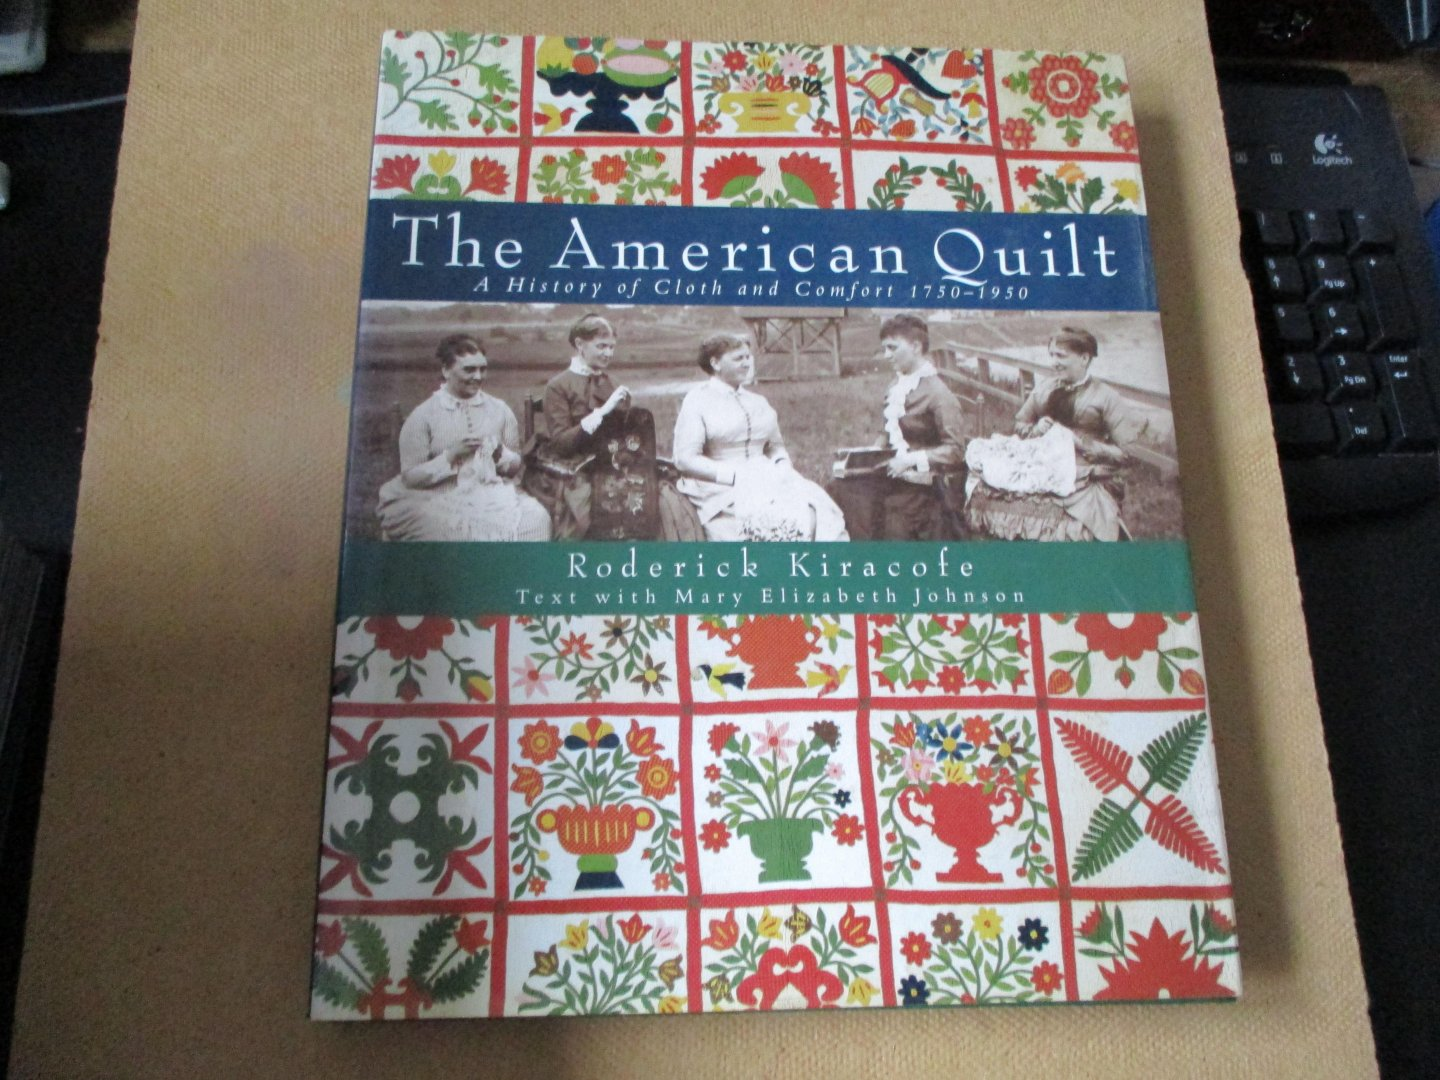 Kiracofe. Roderick - Text with Mary Elizabeth Johnson - The American Quilt /A History of Cloth and Comfort 1750-1950 - illustrated with more than 250 stunning examples